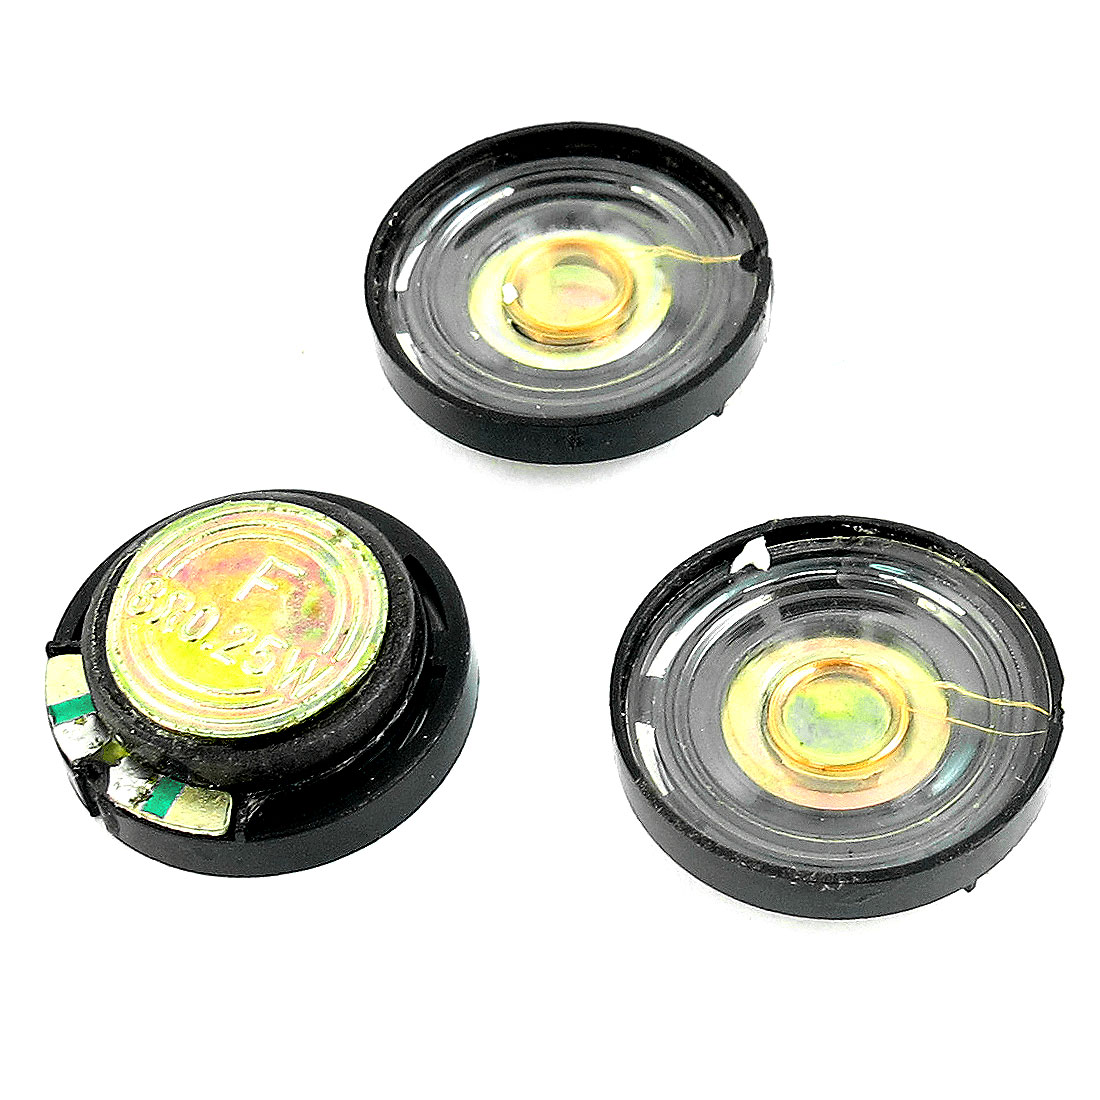 3 Pcs 8 Ohm 0.25W 21mm Diameter Plastic Housing Round Magnet Speaker Loudspeaker for Electric Toys